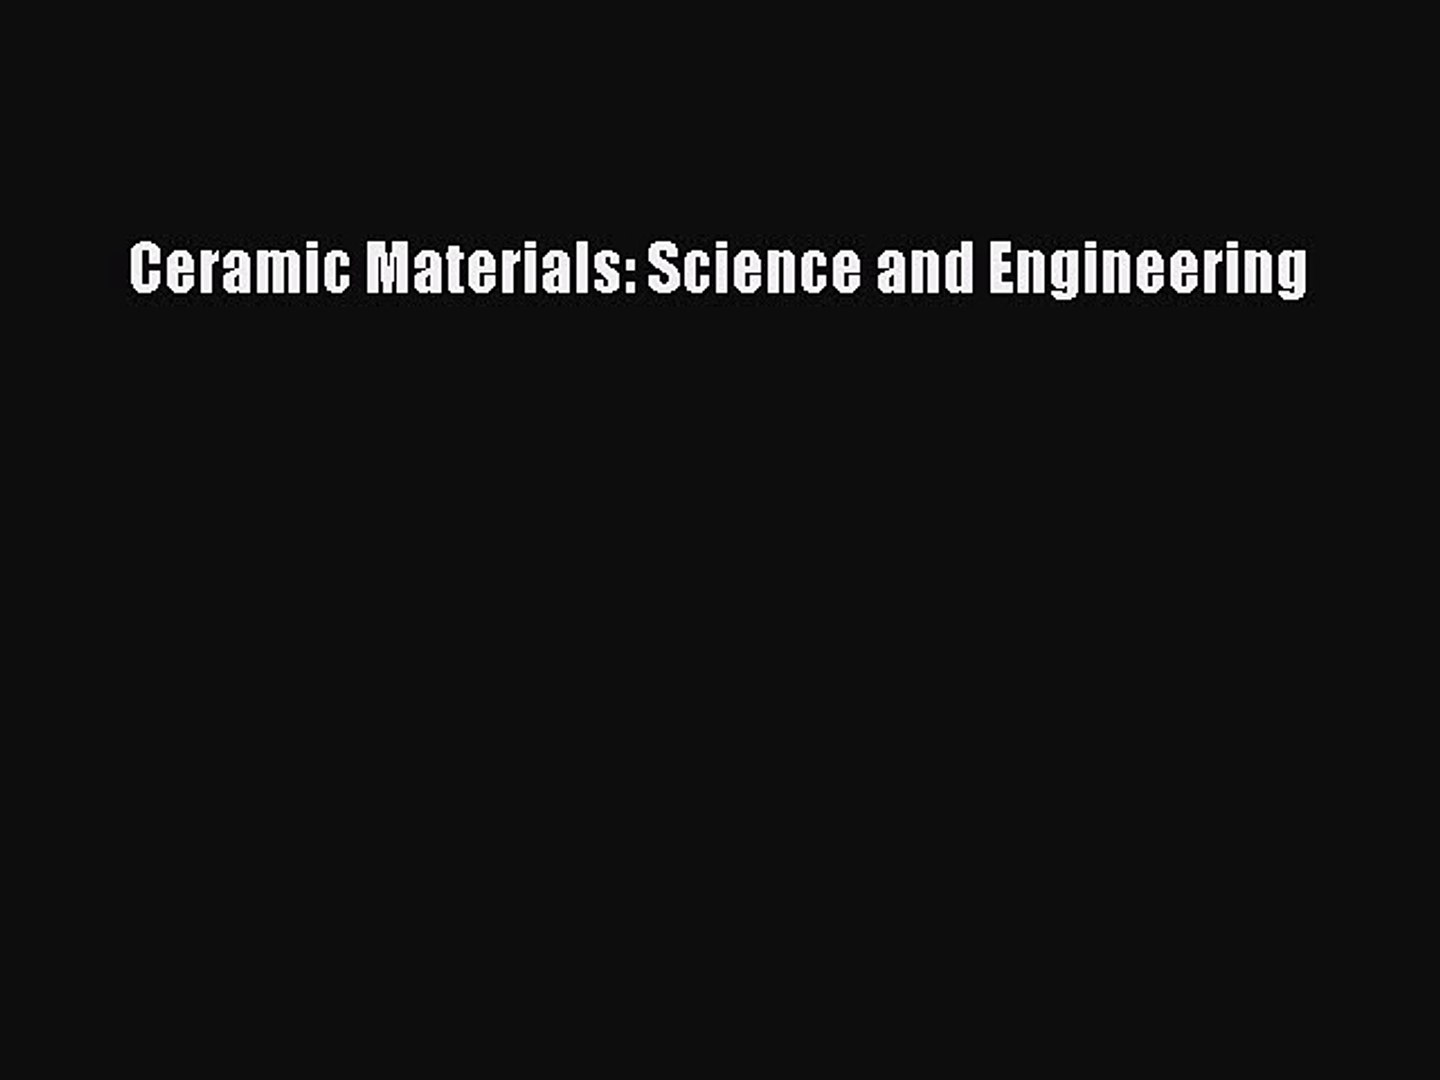 Download Ceramic Materials Science And Engineering Ebook